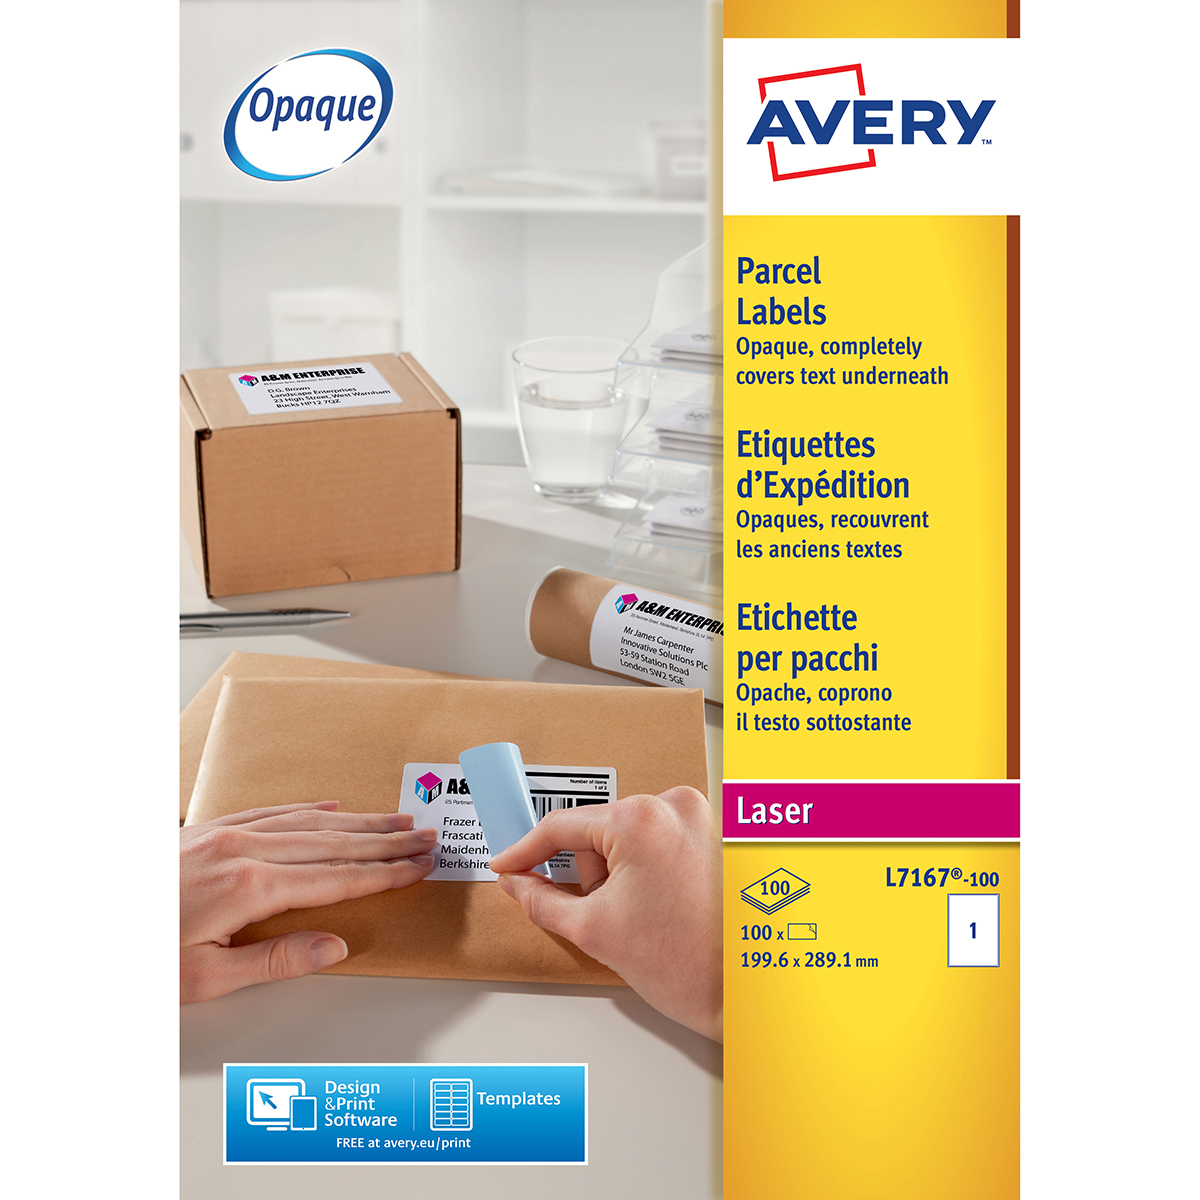 Avery L7167-100 Parcel Labels 100 sheets - 1 Label per Sheet